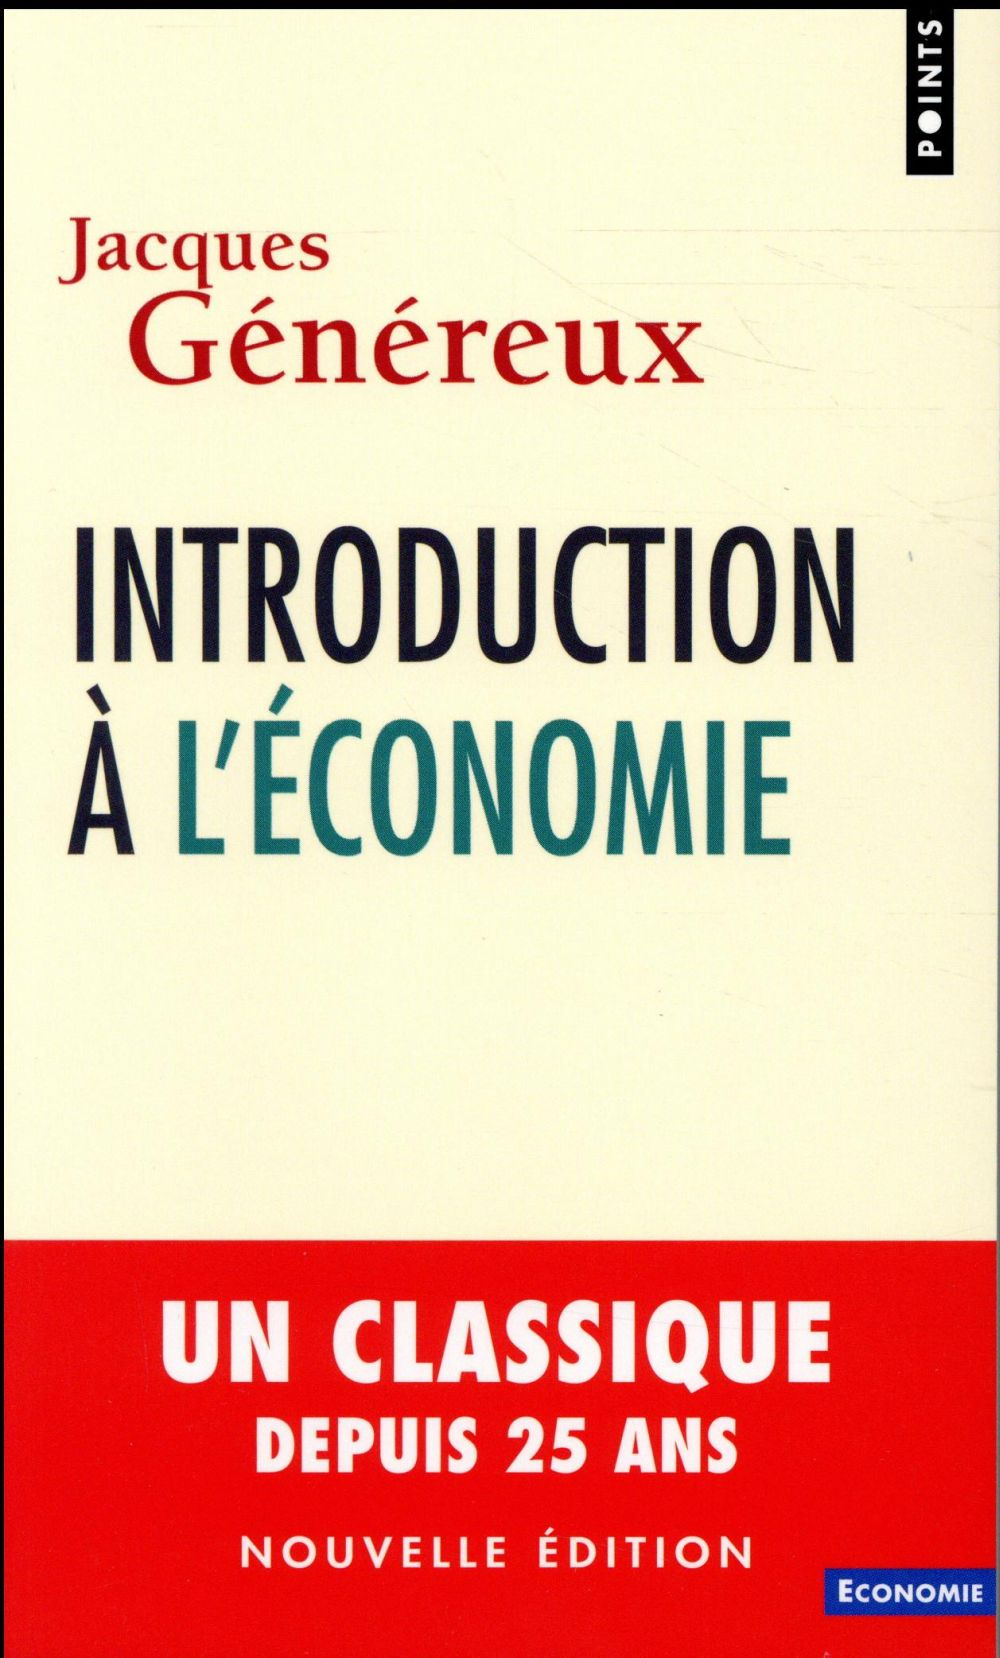 https://webservice-livre.tmic-ellipses.com/couverture/9782757856680.jpg GENEREUX, JACQUES POINTS